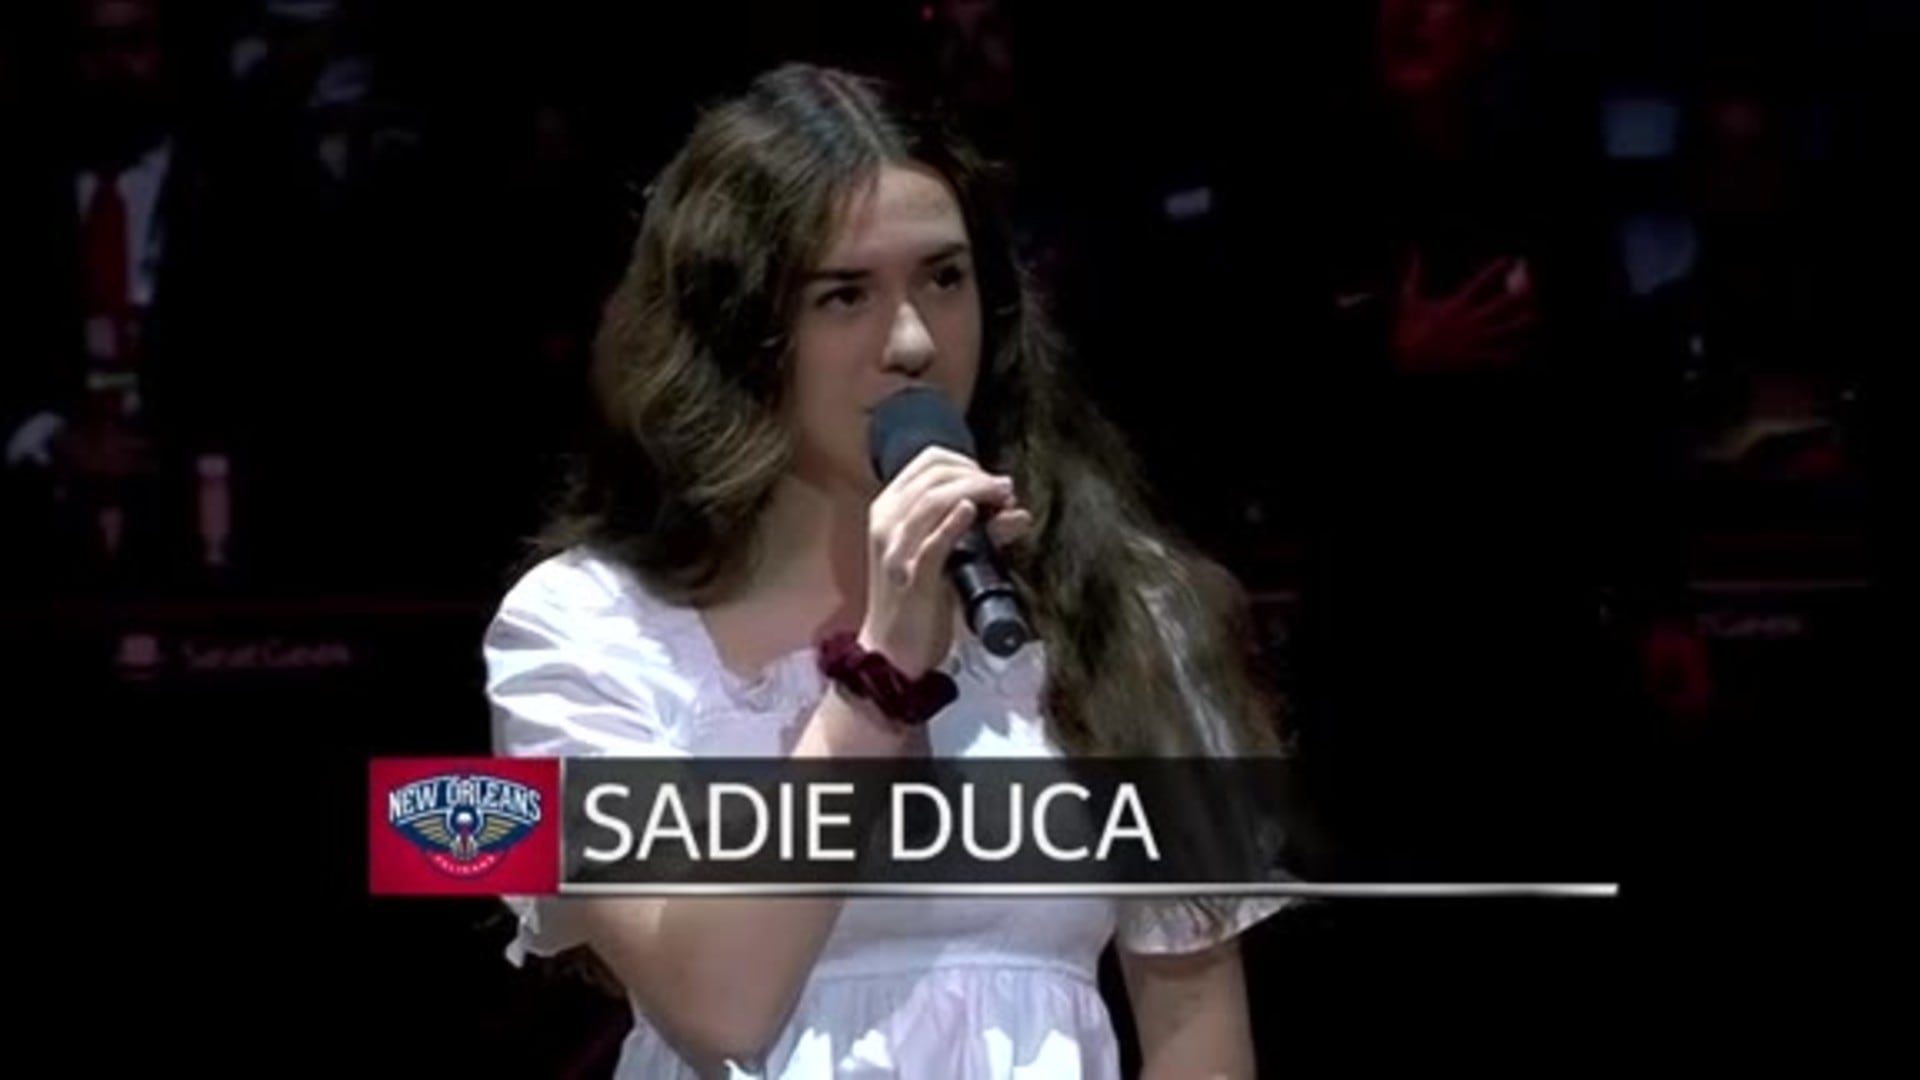 Entertainment: National Anthem performance by Sadie Duca – November 17 vs. Golden State Warriors